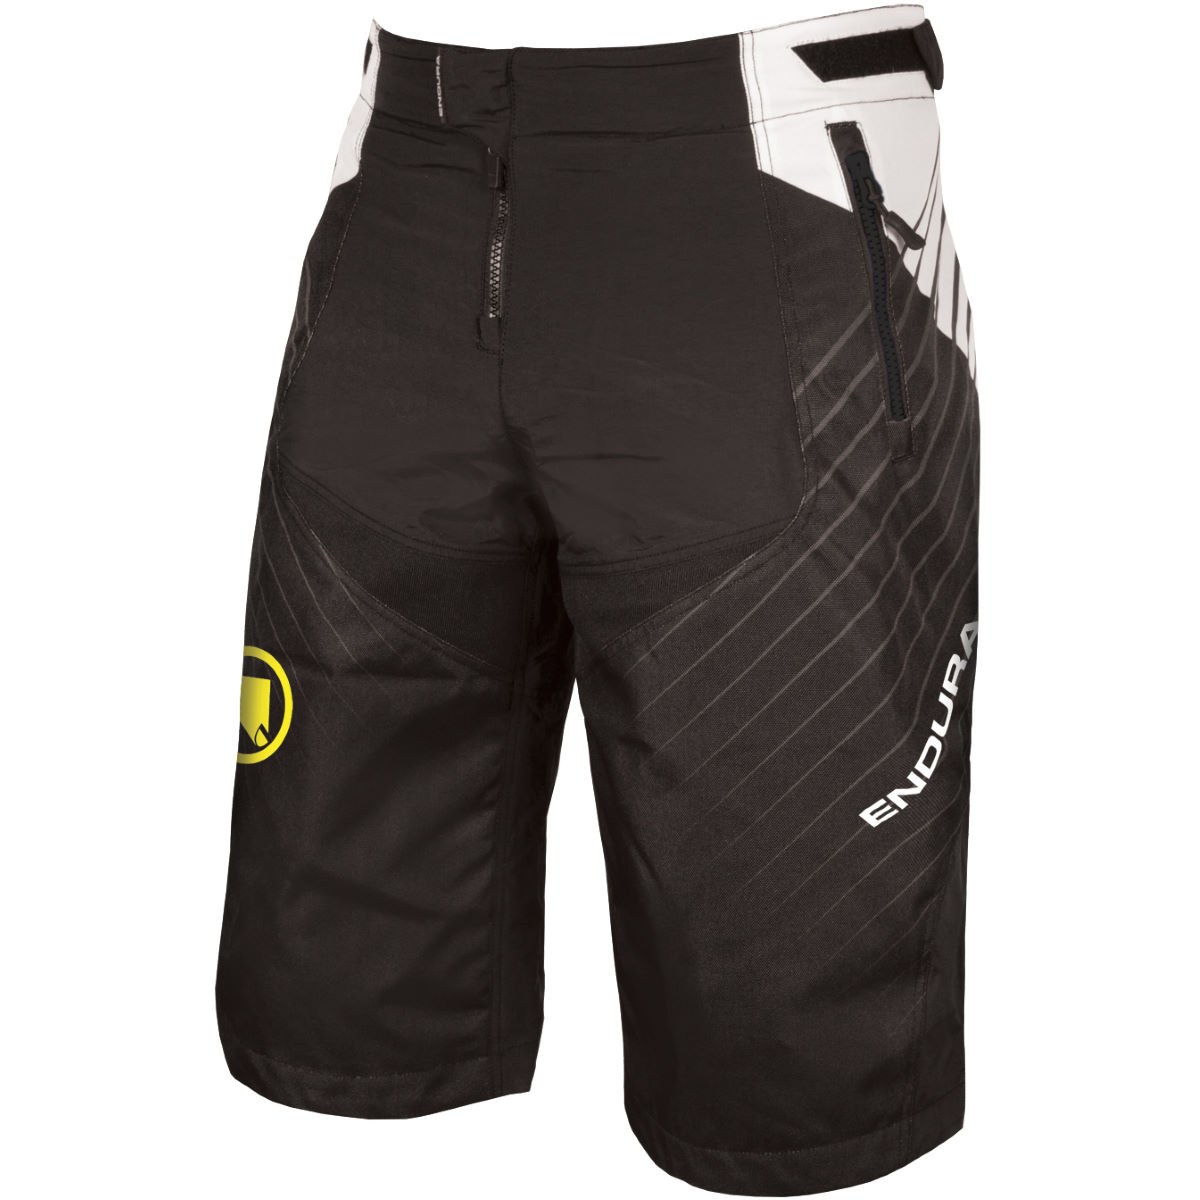 Short Endura MT500 Burner DH LTD - Large Noir Shorts VTT